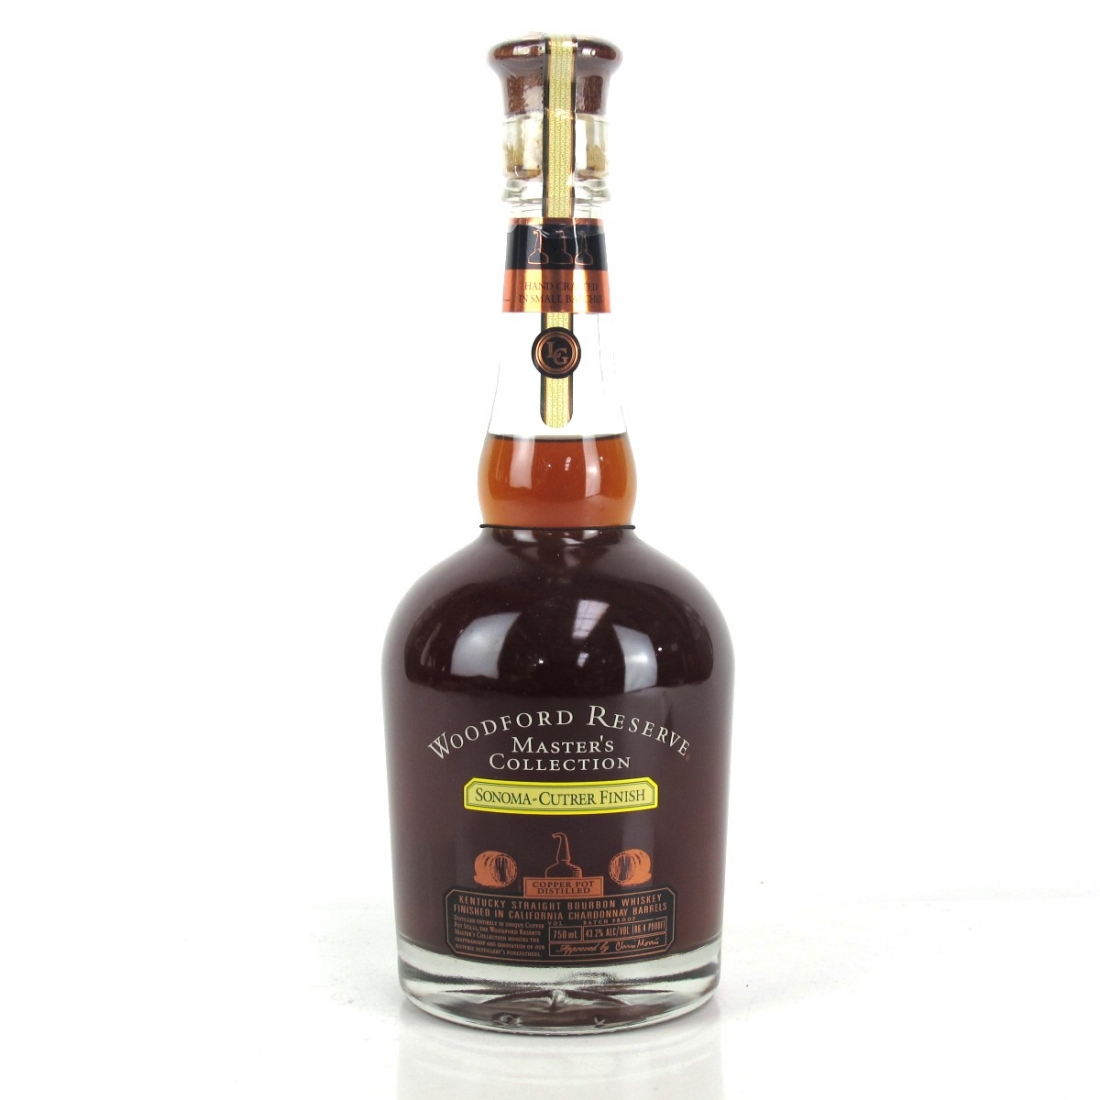 Woodford Reserve Master's Collection / Sonoma-Cutrer Finish